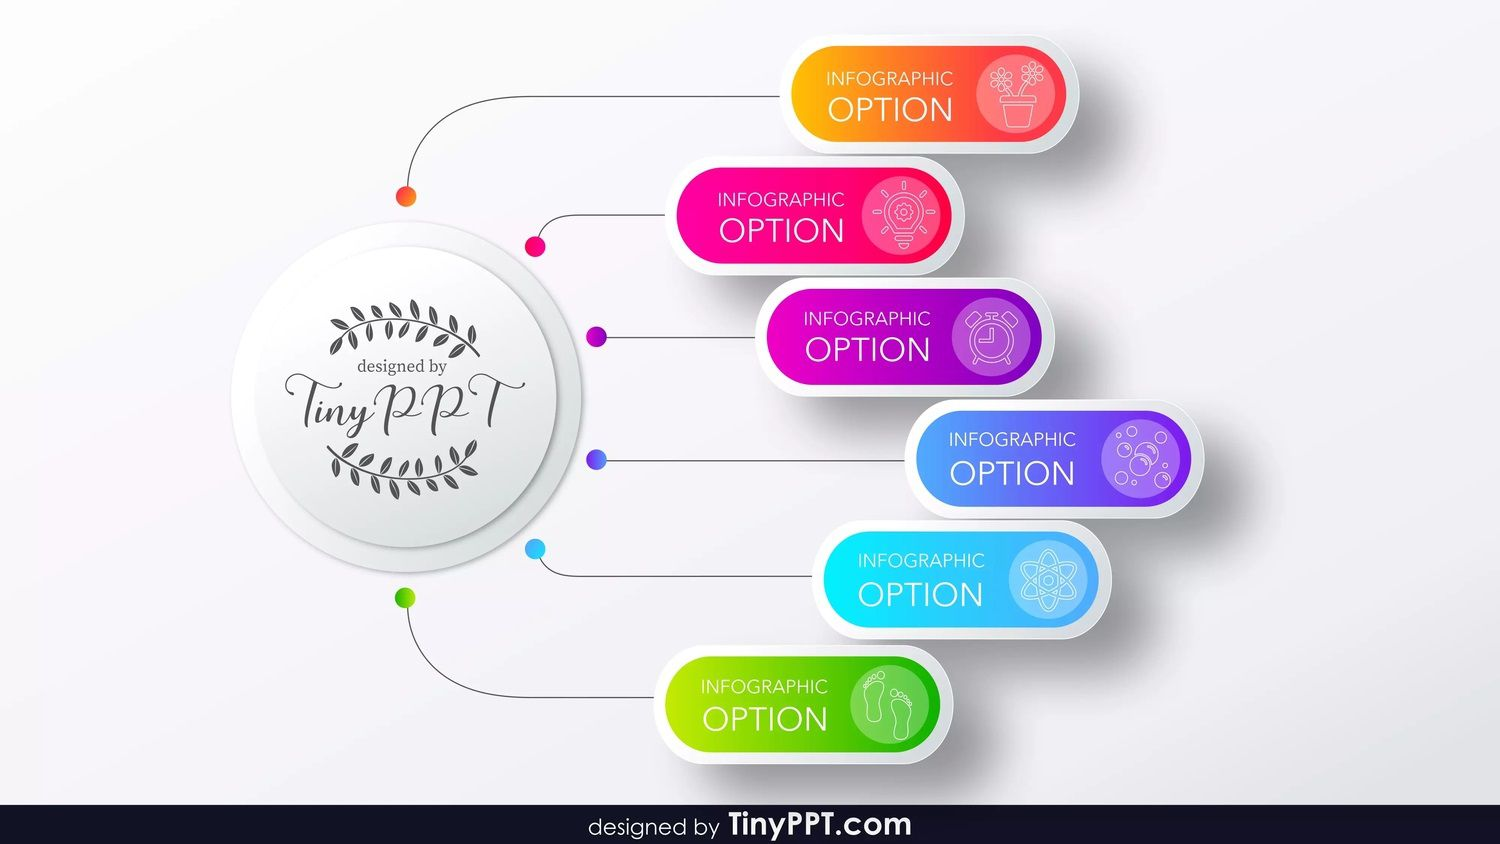 002 Best Animated Ppt Template Free Download High Def  Downloads Powerpoint Education 2020 MicrosoftFull